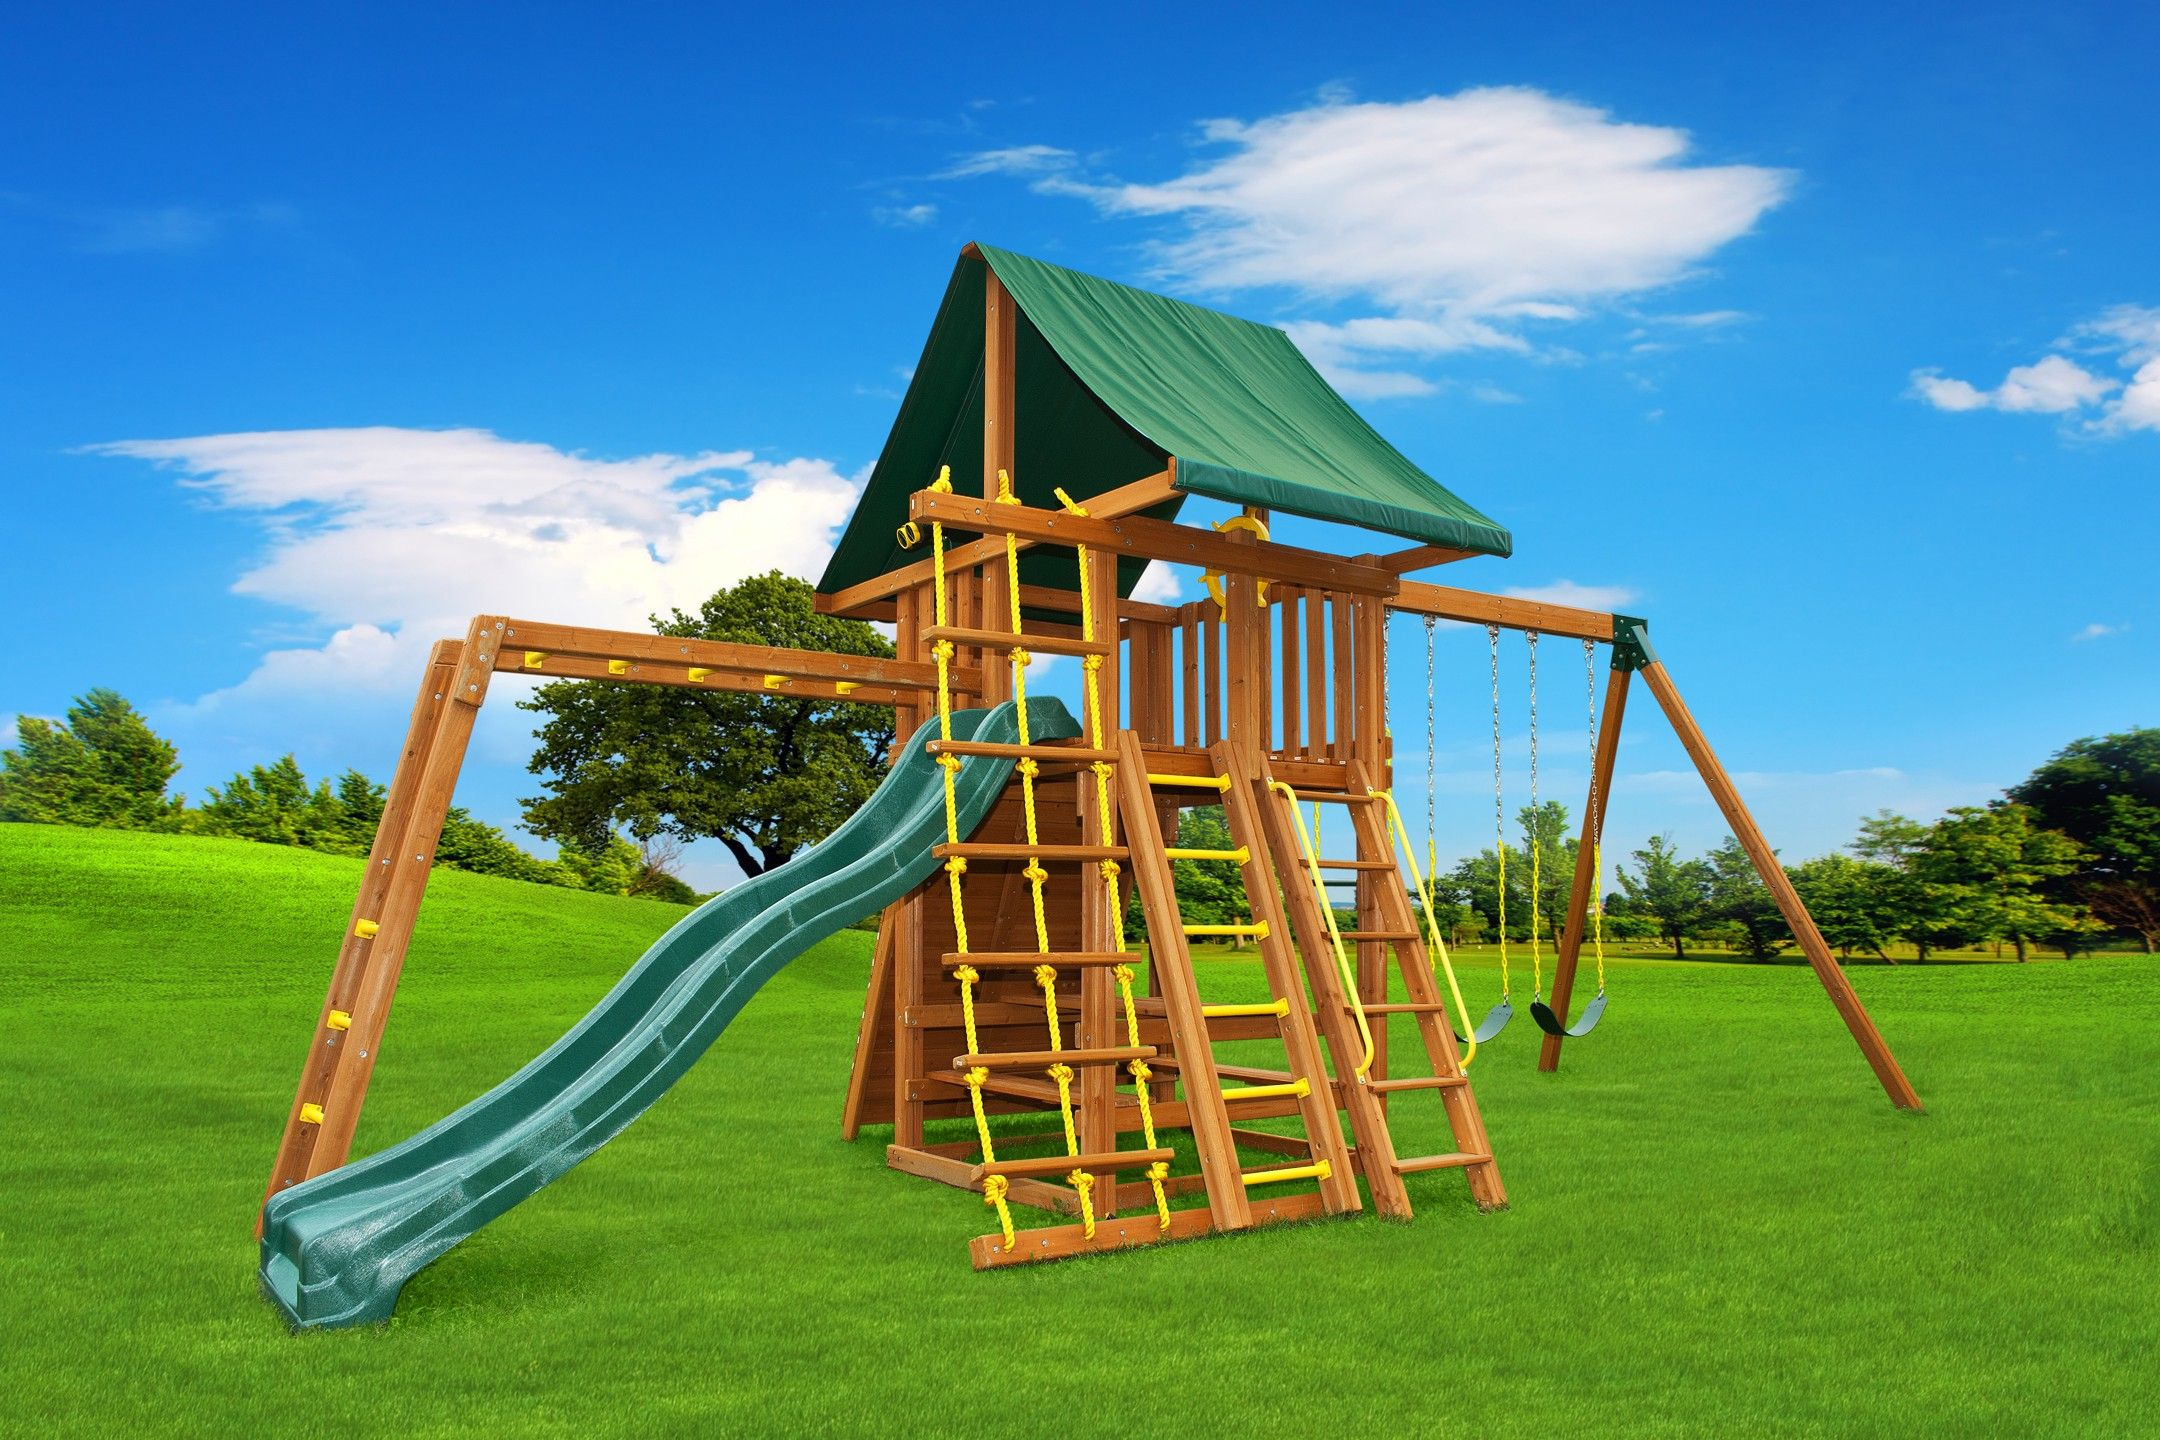 Dream 3 Wood Swing Set